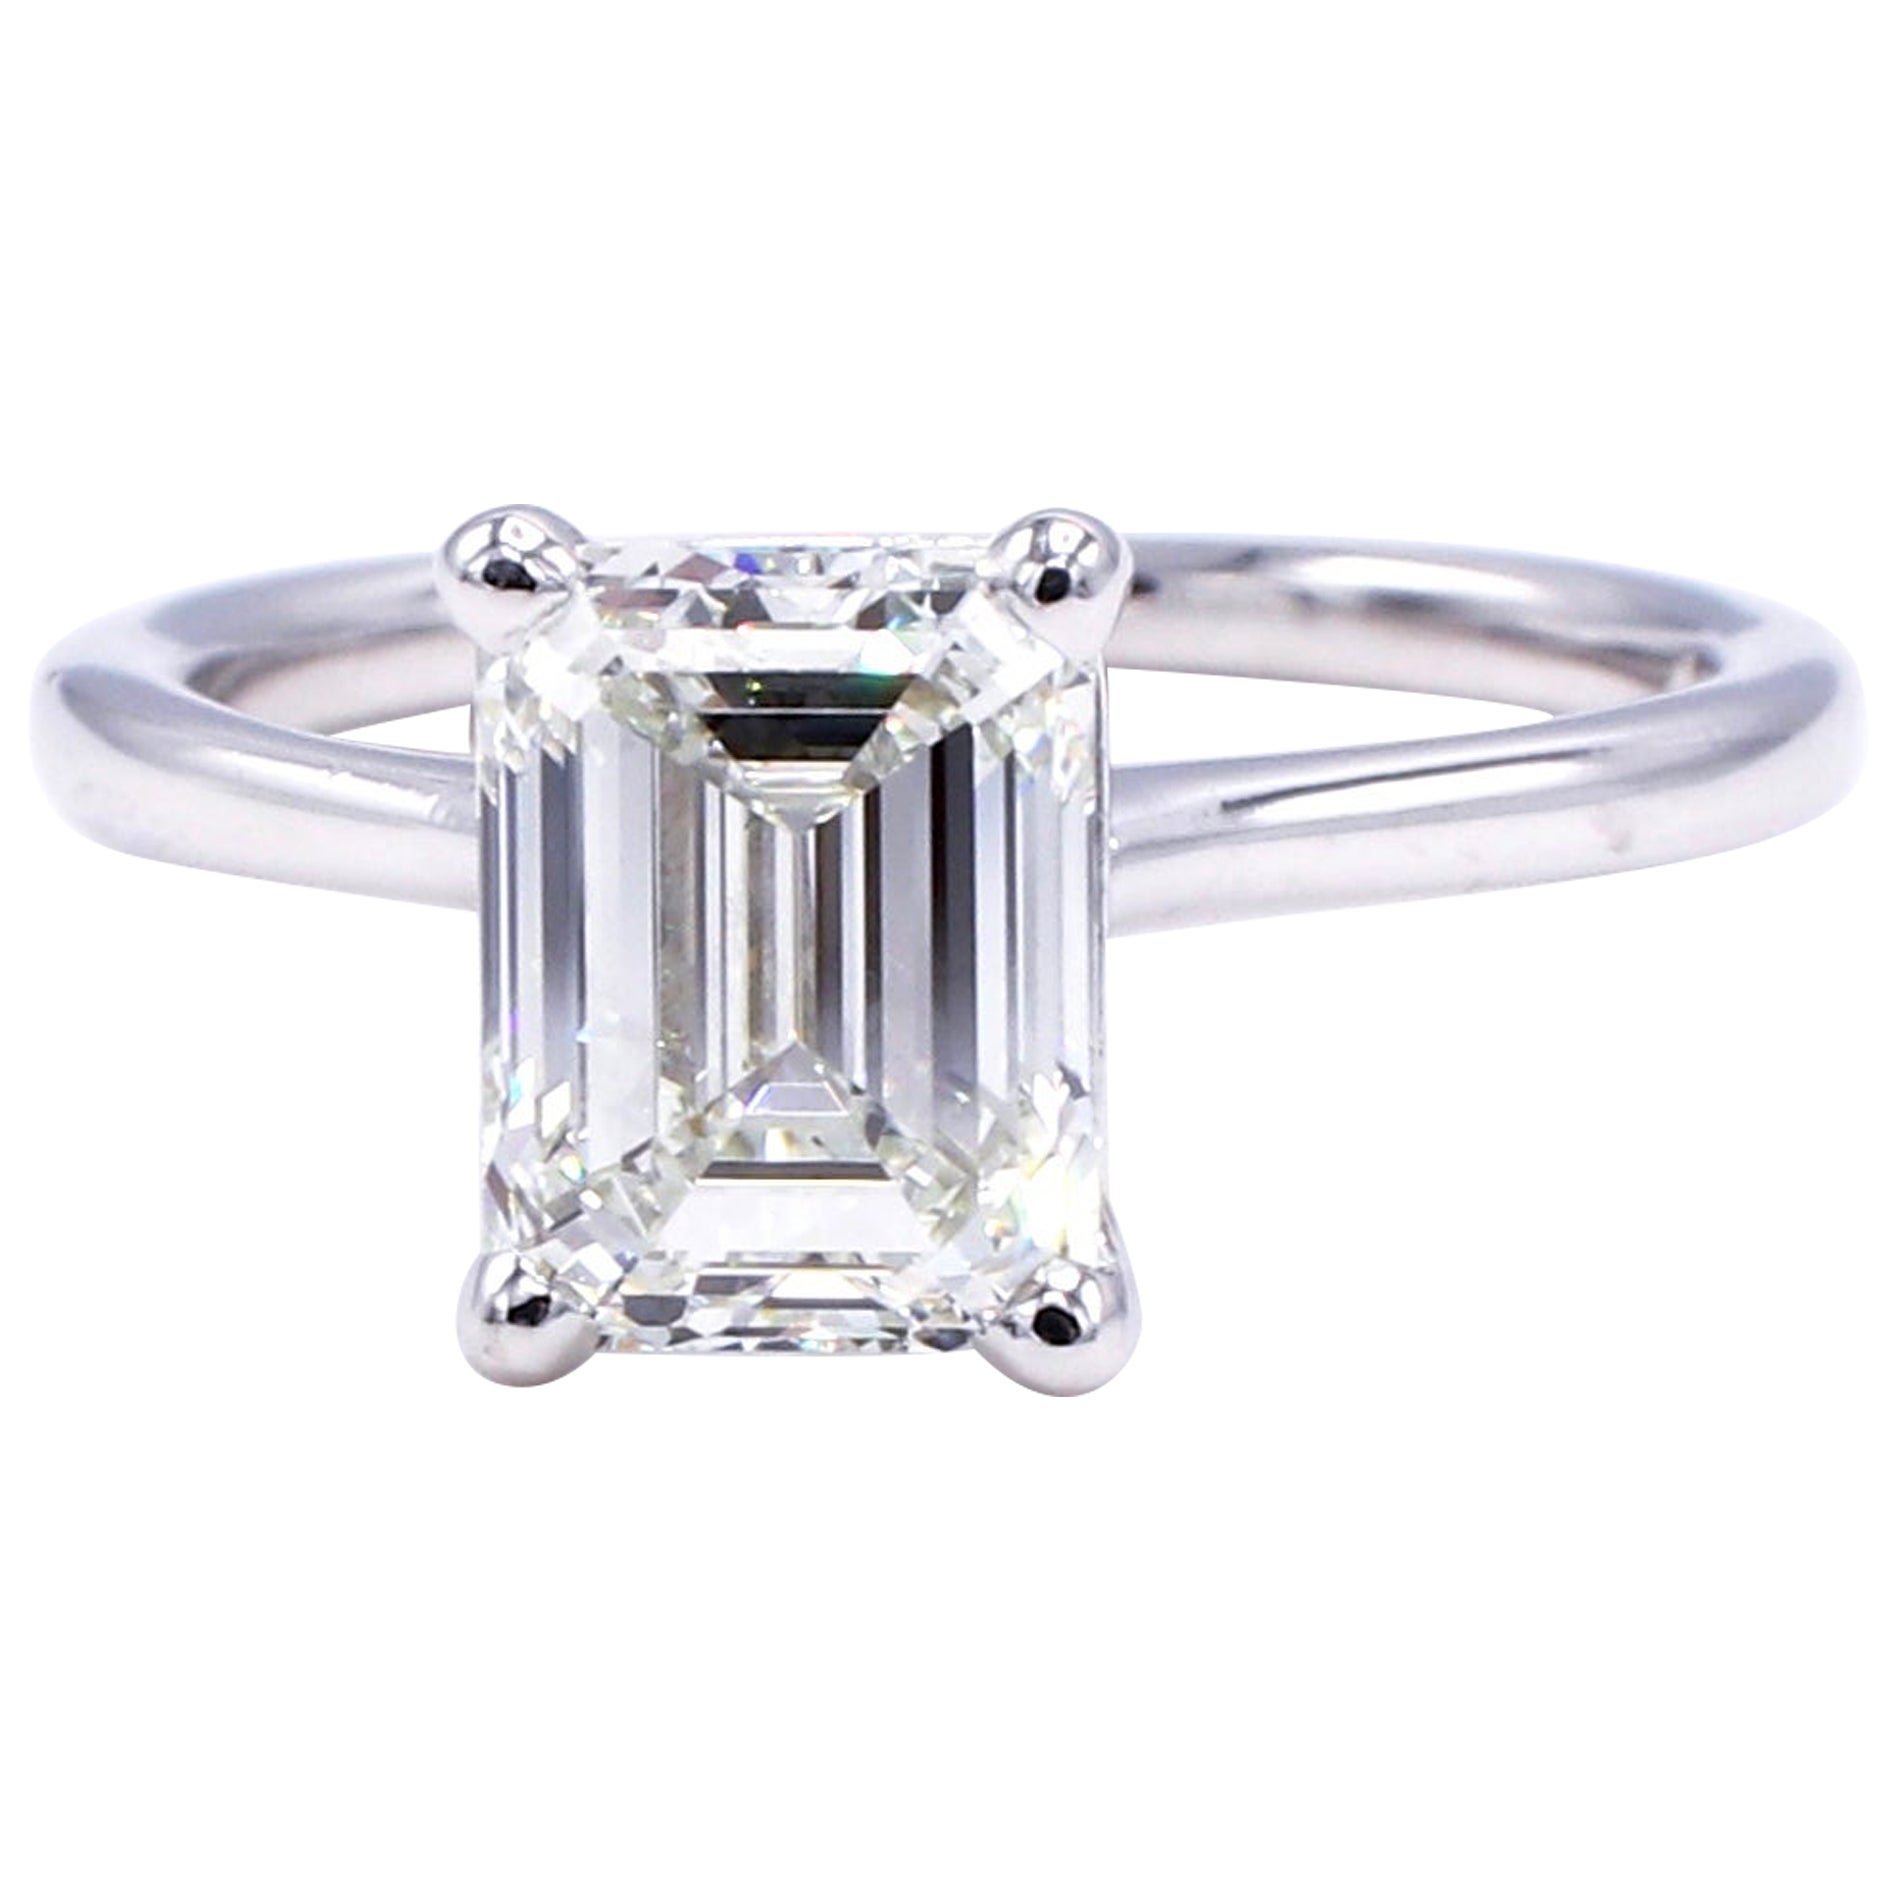 GIA Certified 2.03 Carat Emerald Cut Solitaire Diamond Platinum Engagement Ring